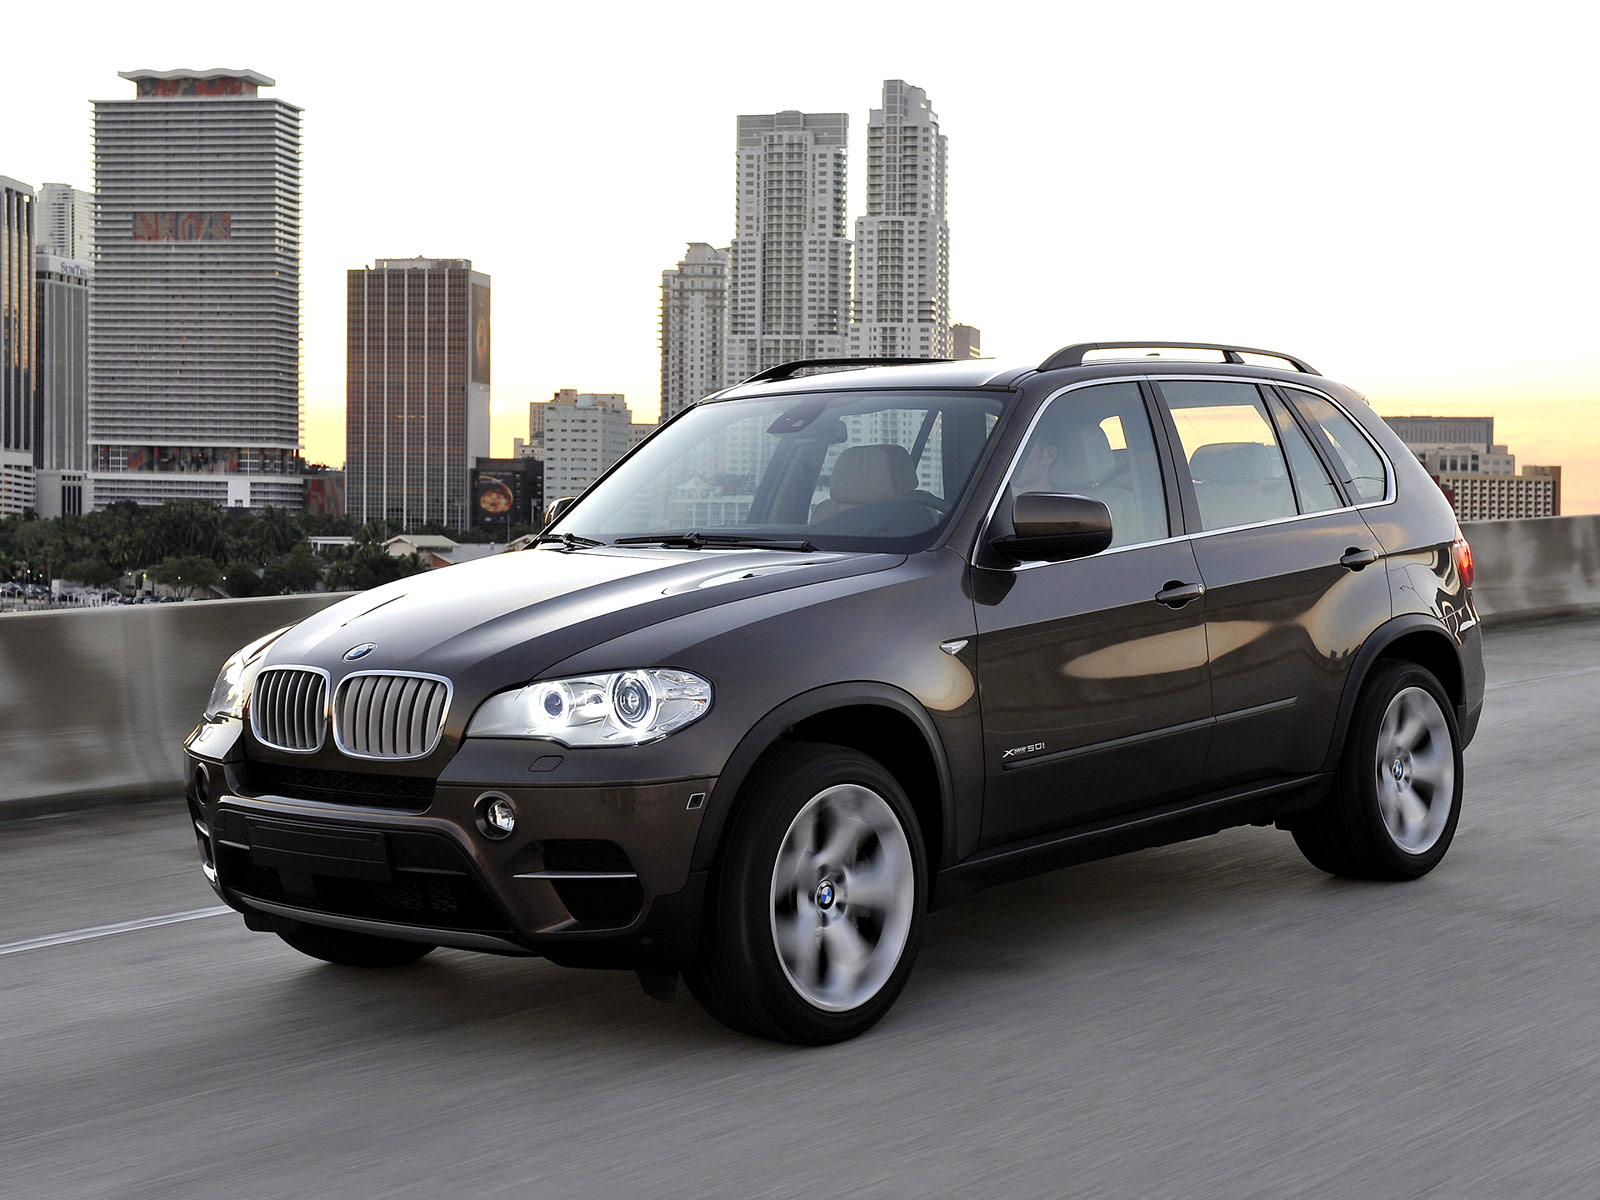 bmw x5 2011 pictures auto insurance informations. Black Bedroom Furniture Sets. Home Design Ideas